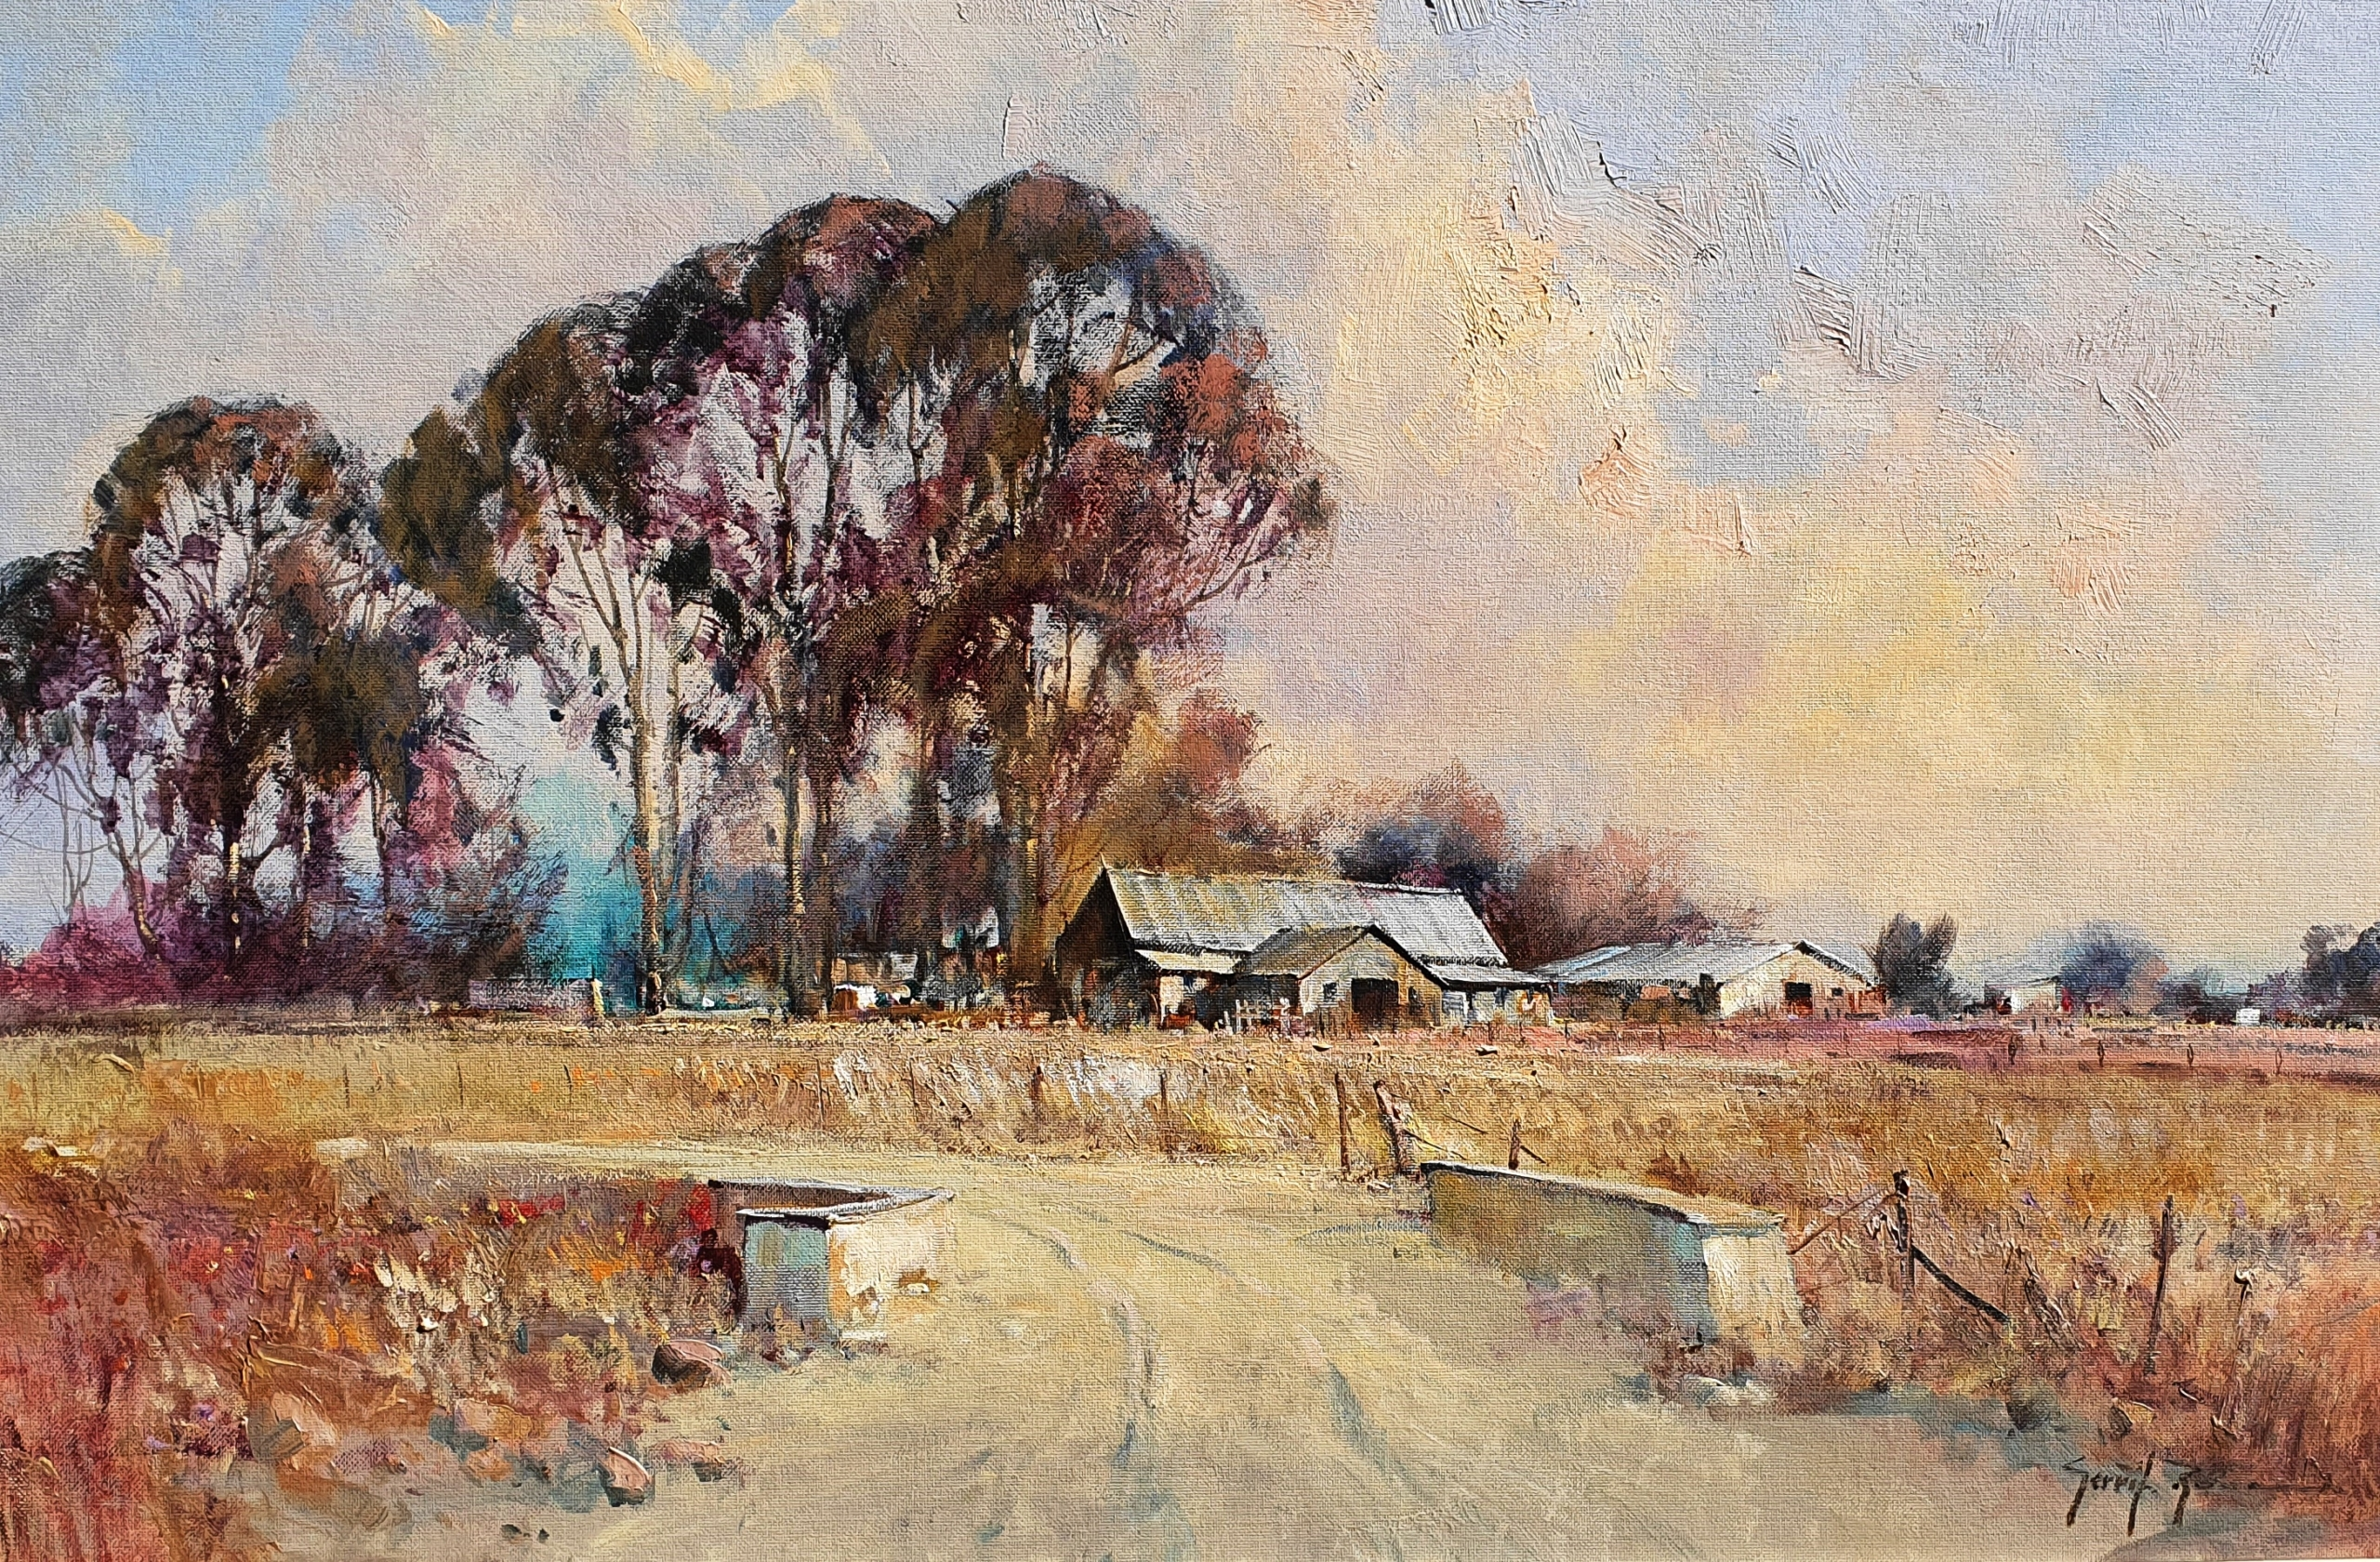 gerrit roon , south african art , oil paintings for sale , crouse artdealers